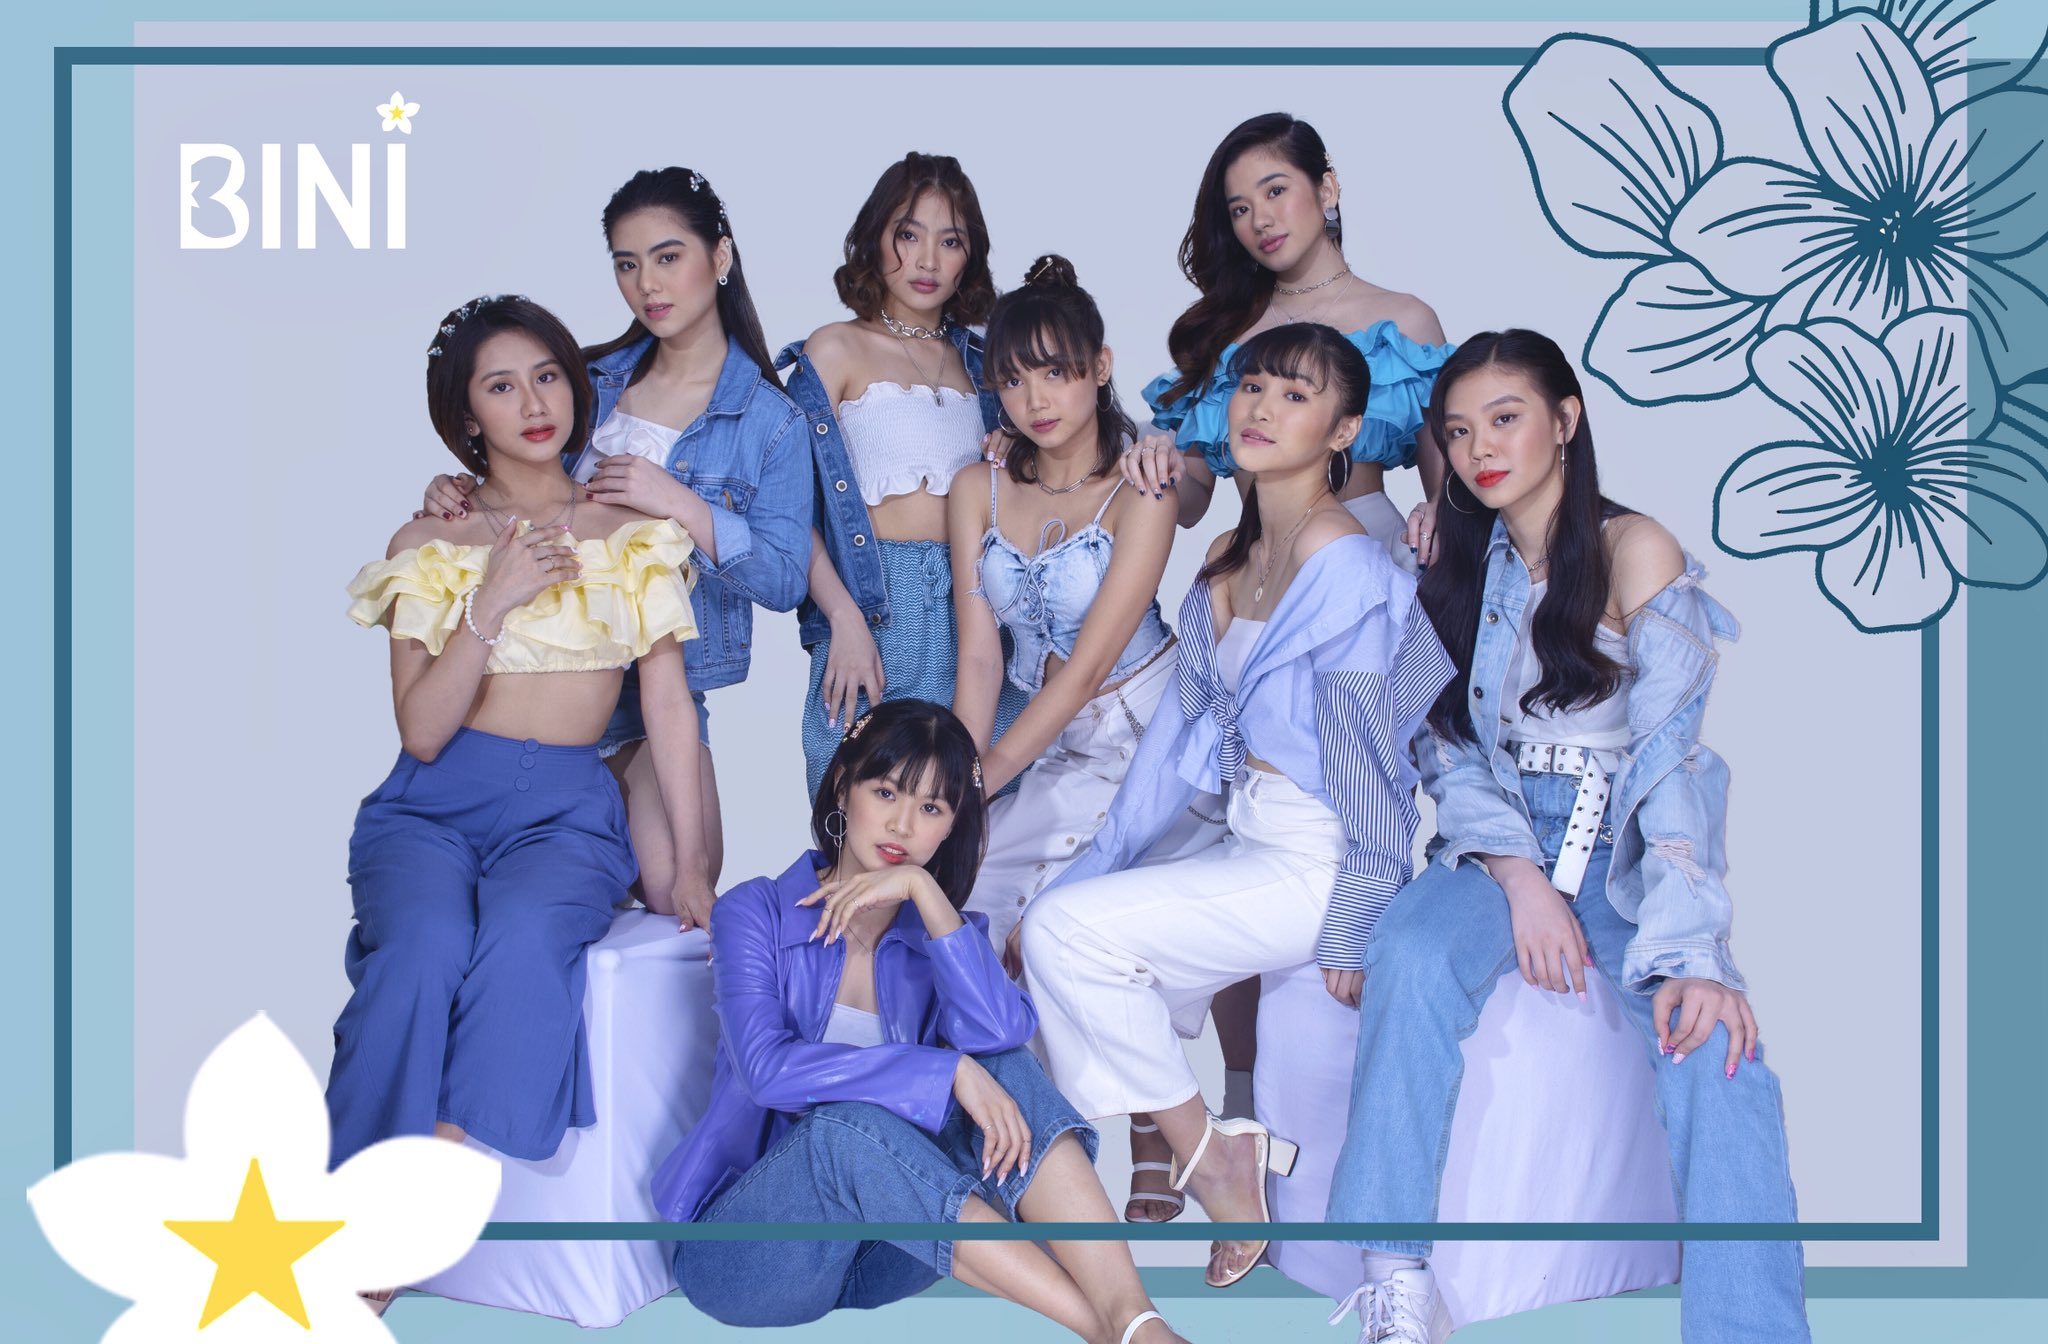 BINI will unveil a fiercer look, sound, and attitude at their grand two part launch this June on KTX PH